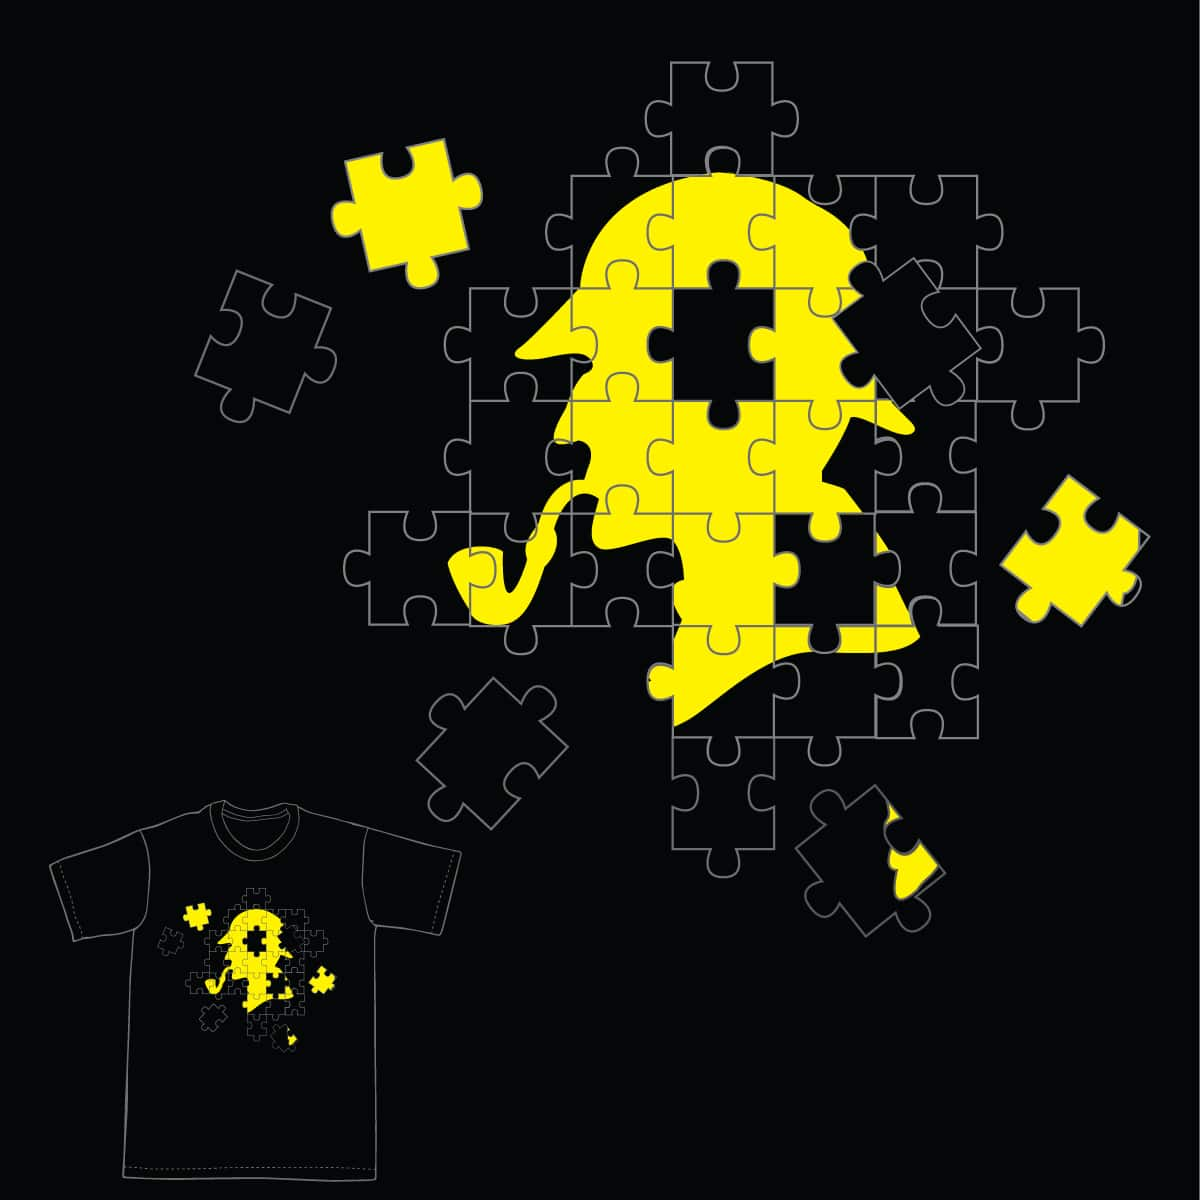 The Ultimate Puzzle by tratinchica on Threadless